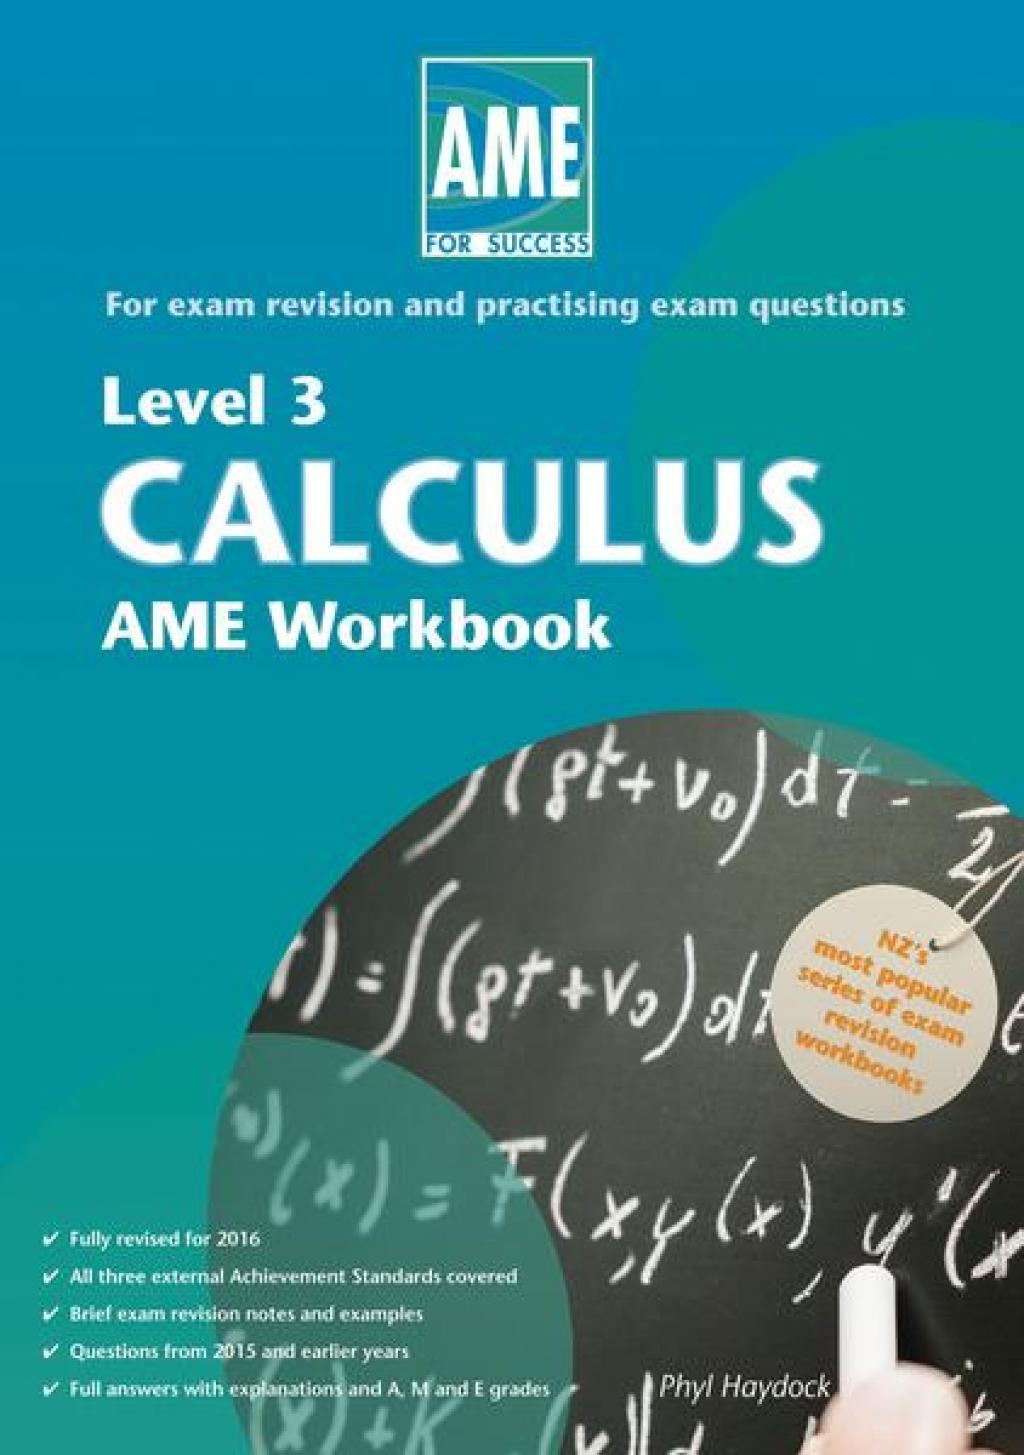 Level 3 Calculus AME Workbook | Read Pacific | Reading Books ...